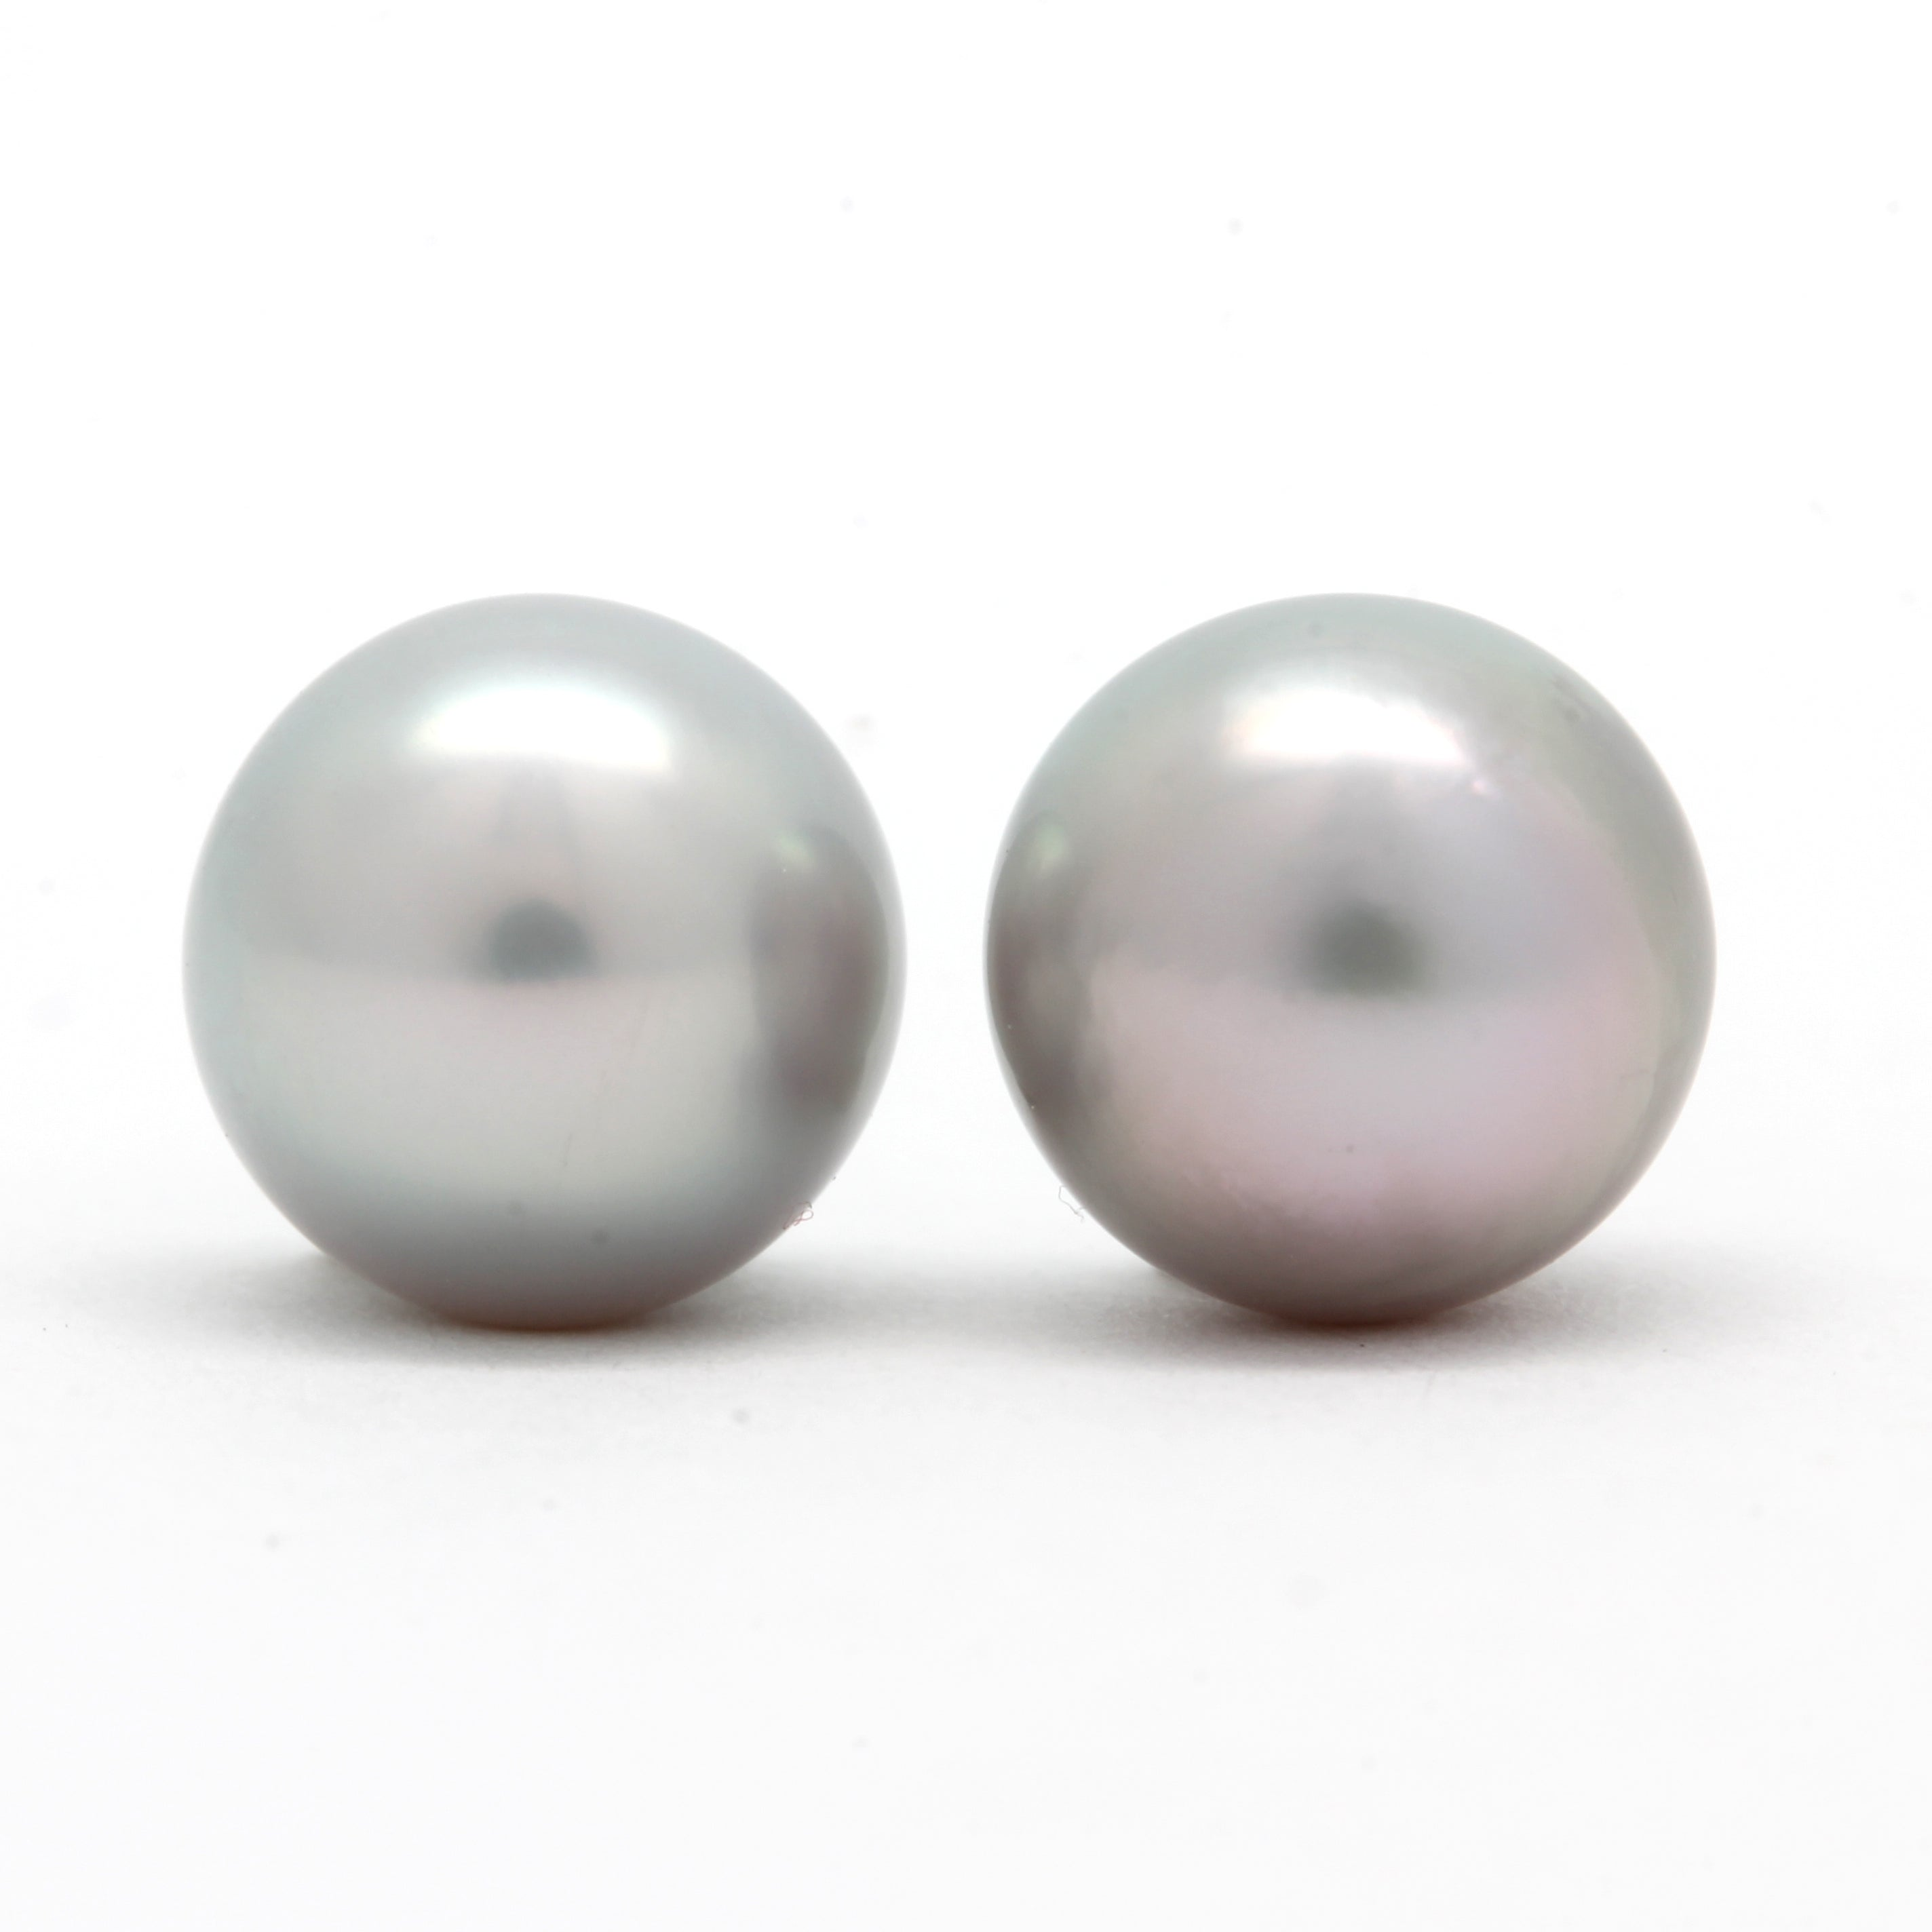 Pair of 8.5 mm Cortez Pearls